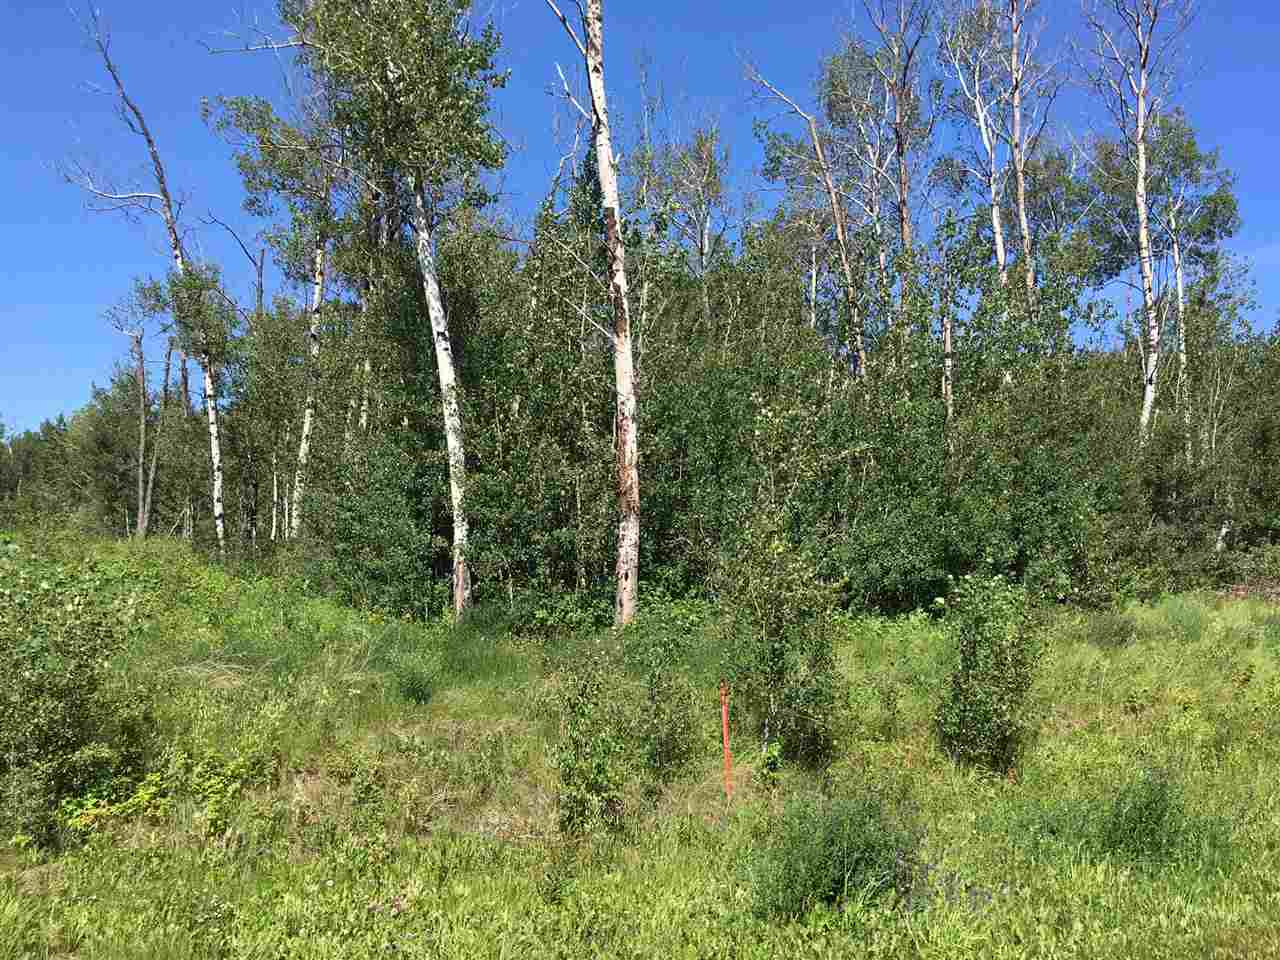 Main Photo: 9 Lake Country Estates: Rural Athabasca County Rural Land/Vacant Lot for sale : MLS®# E4069751